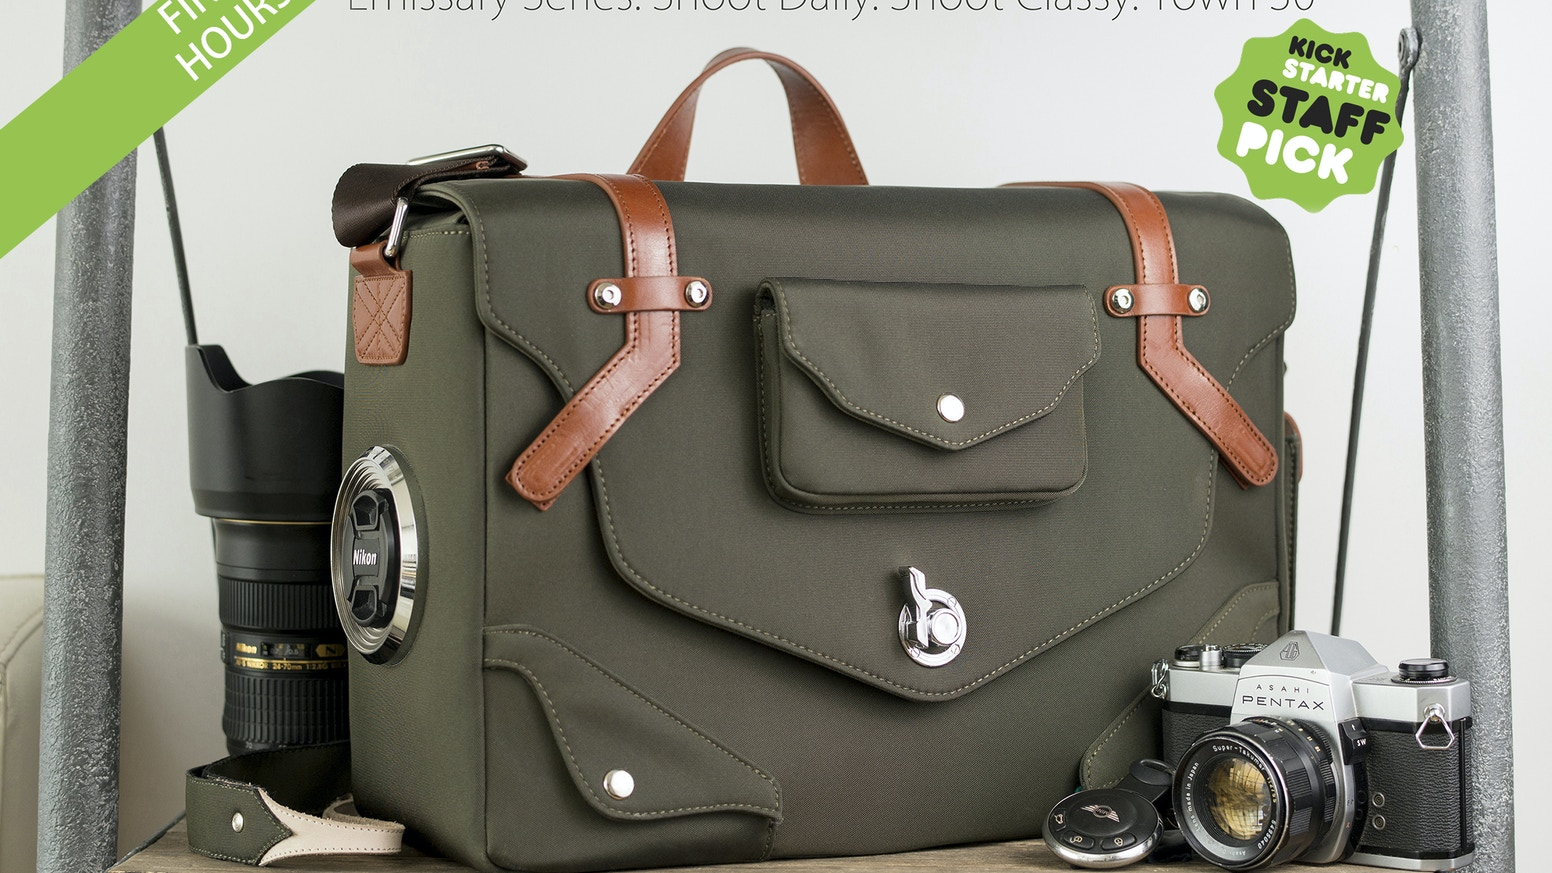 Beyond holding your gear. The Emissary directly connects you to your photography experience. Shoot daily. Shoot classy. Town 30.